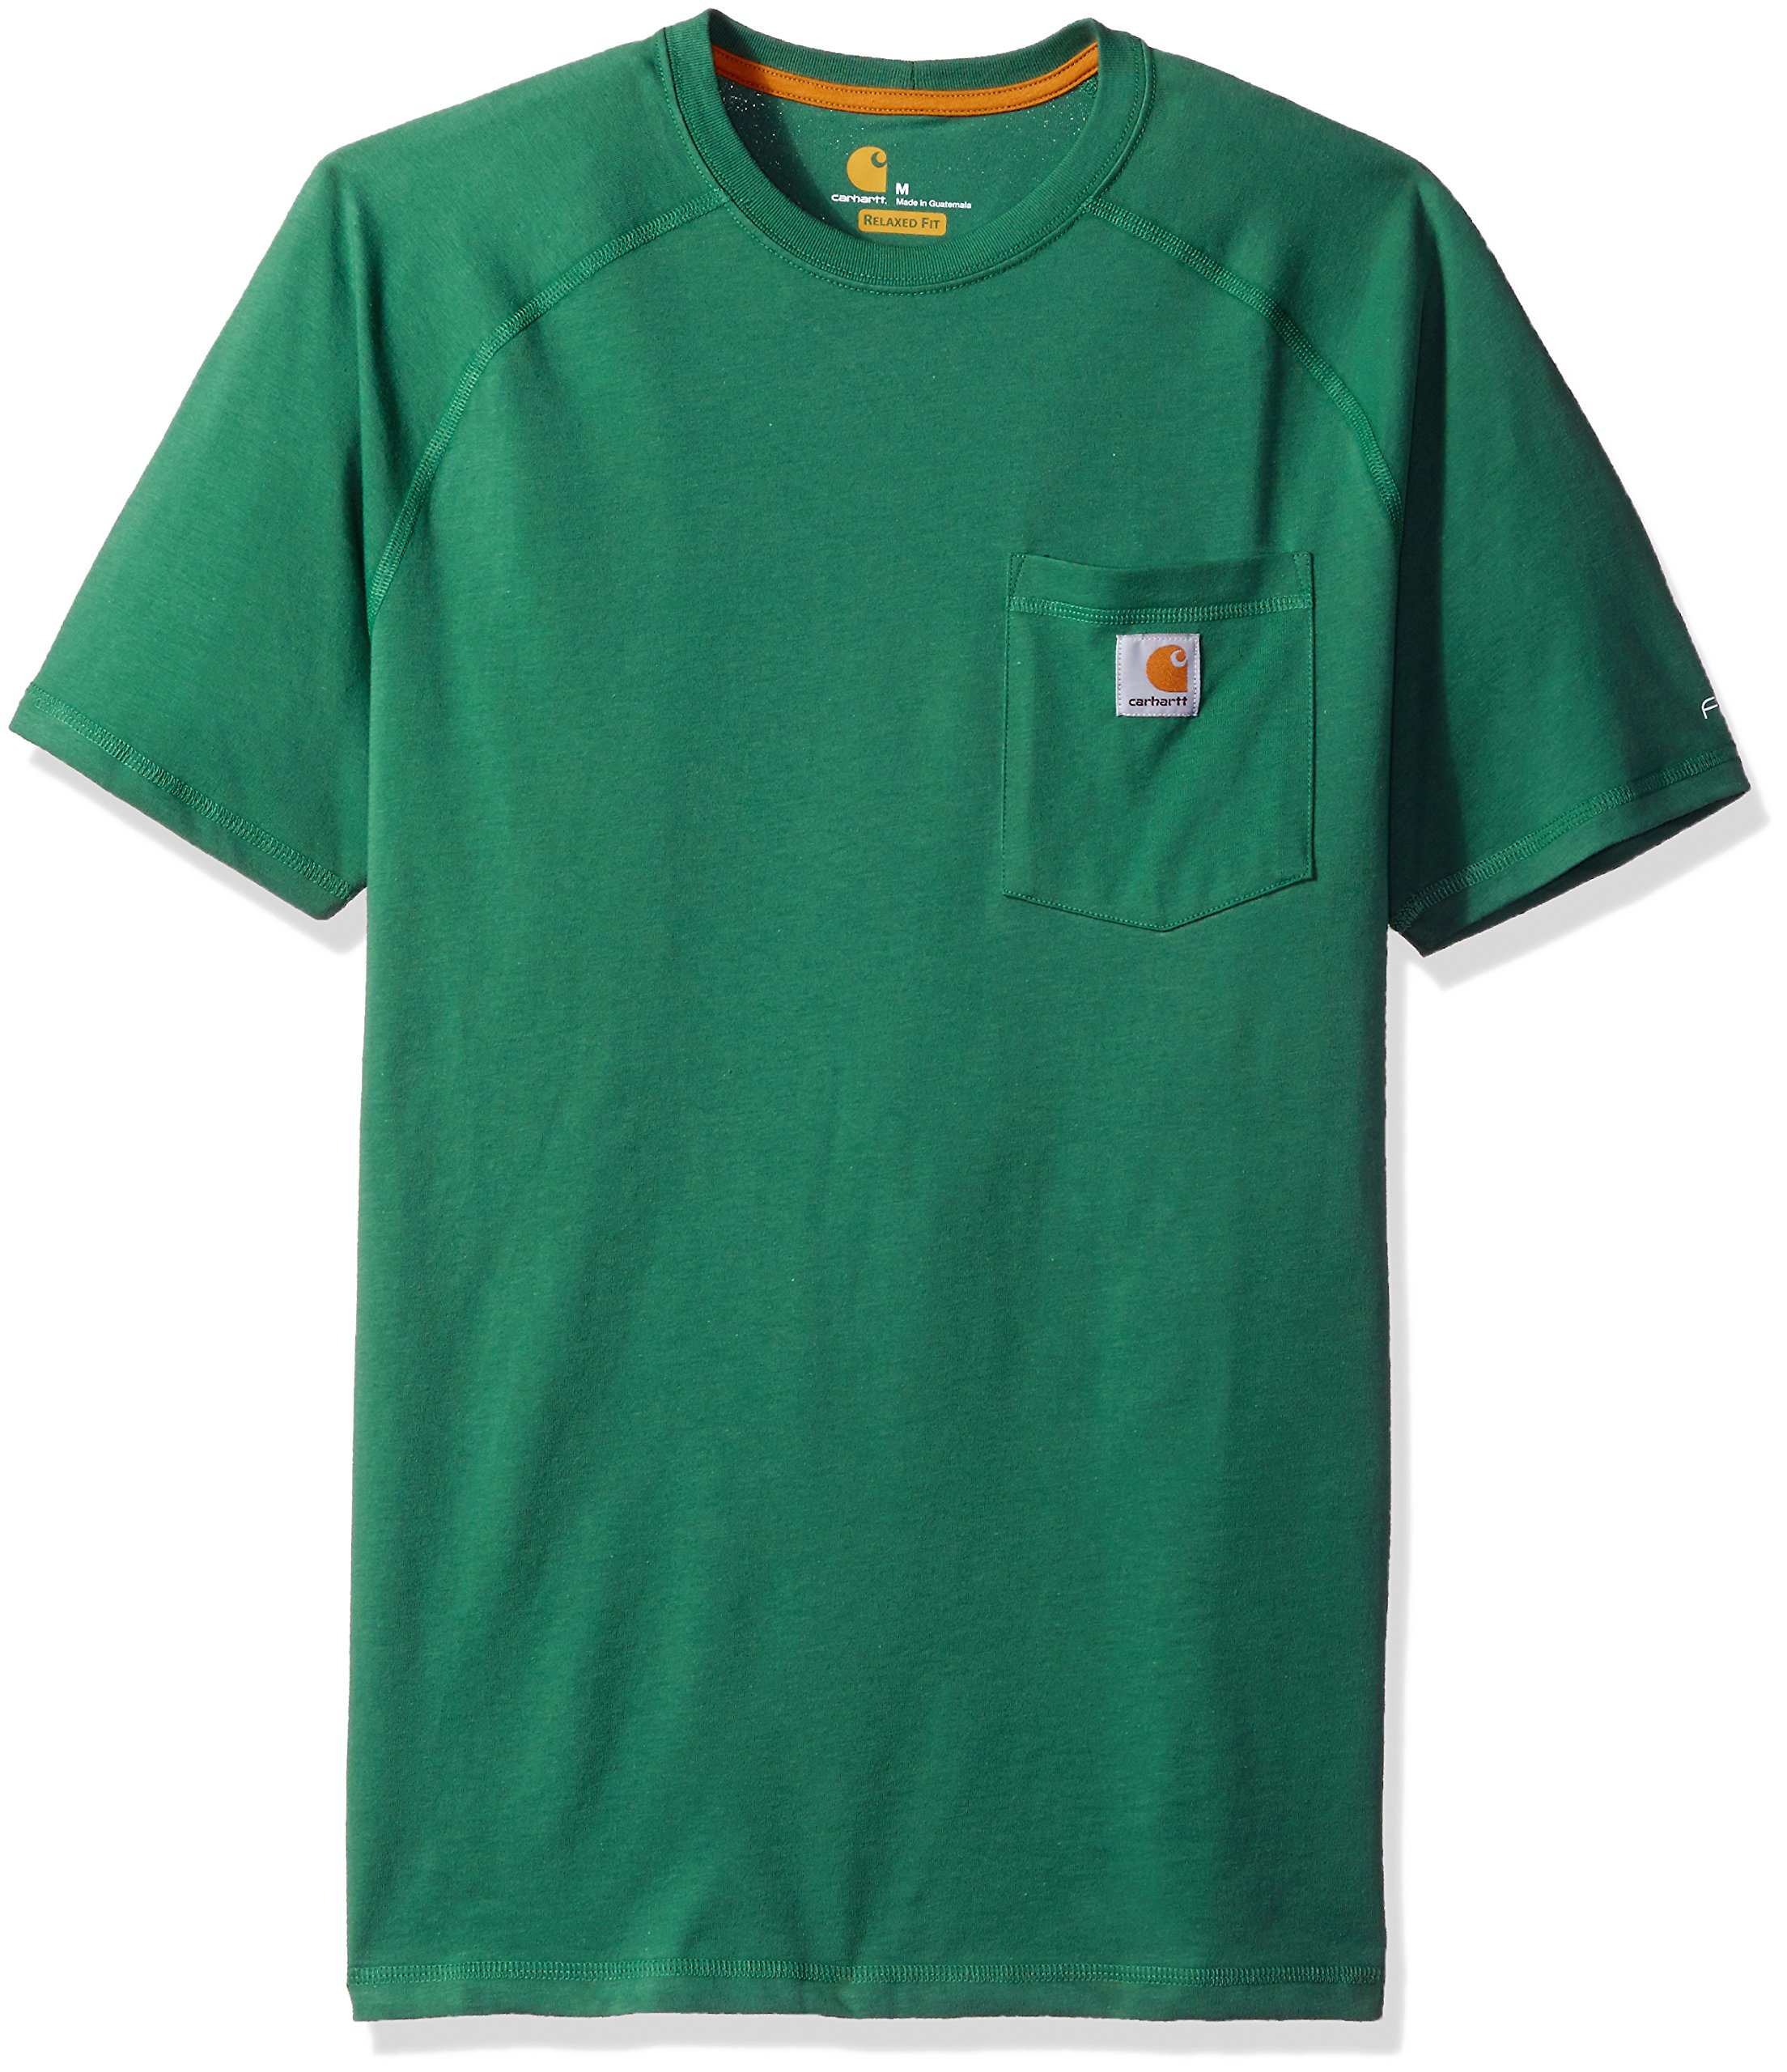 Carhartt Men's Force Cotton Delmont Short Sleeve T-Shirt, Botanical Green, X-Large